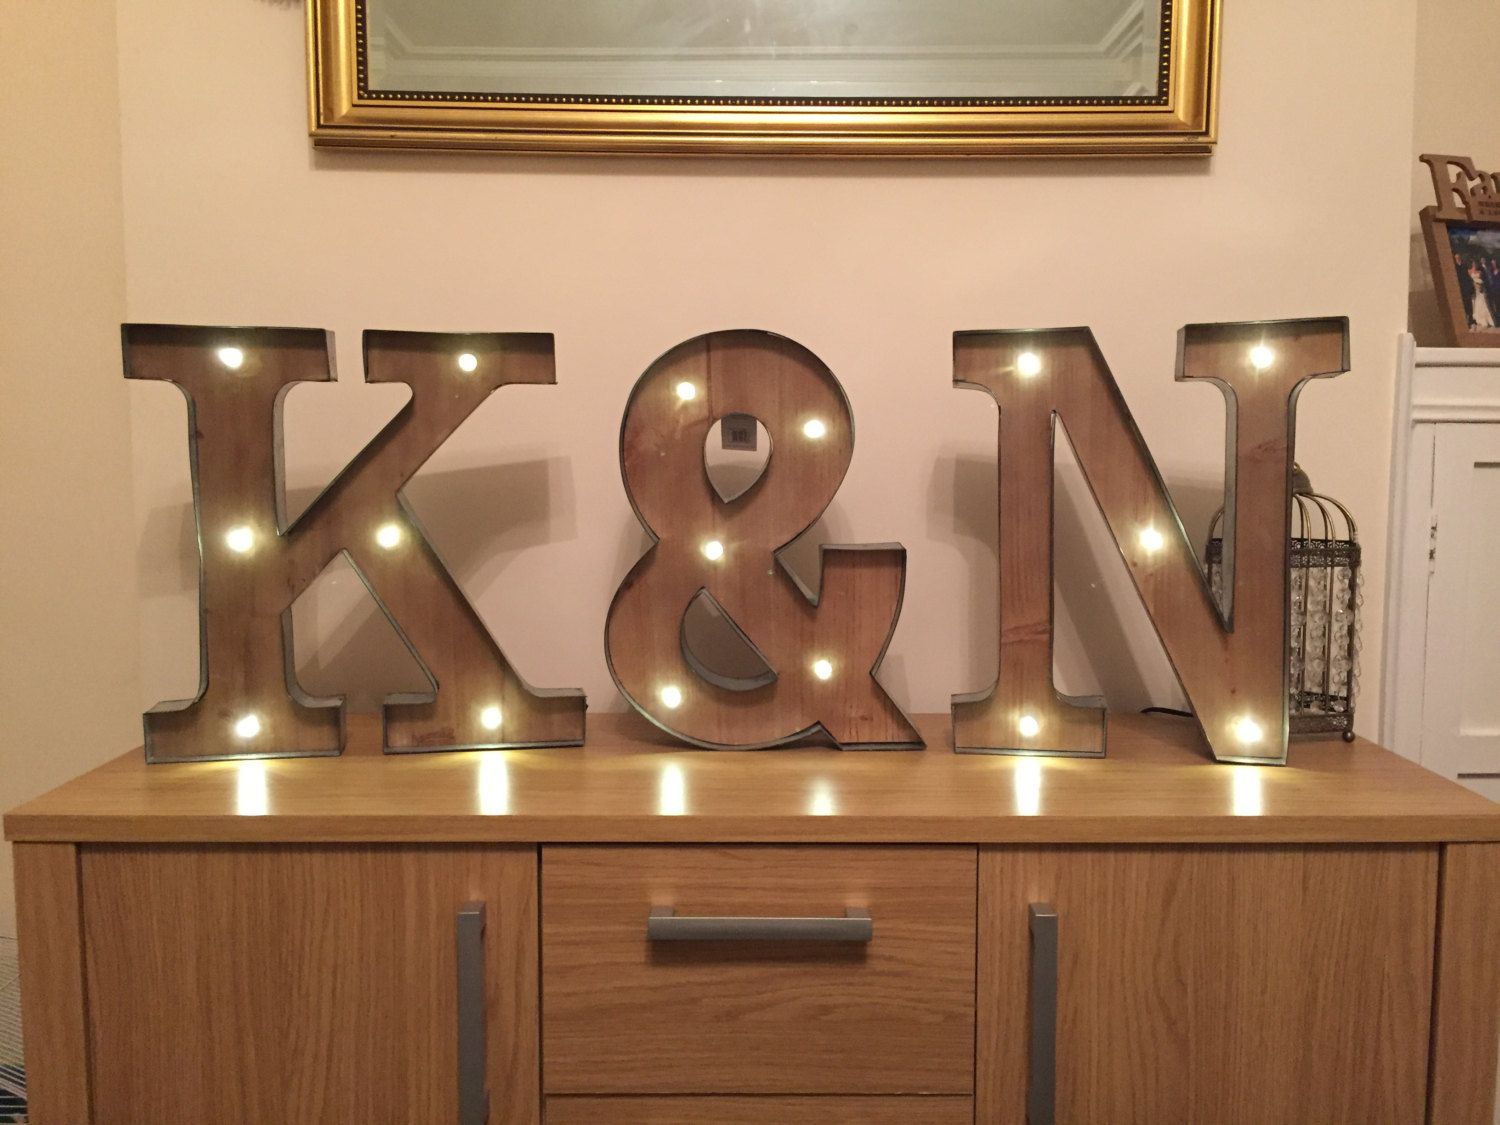 Light Up Letters For Wall Gorgeous Freestanding Initials Wooden Rustic Led Light Up Letters Letter Decorating Inspiration